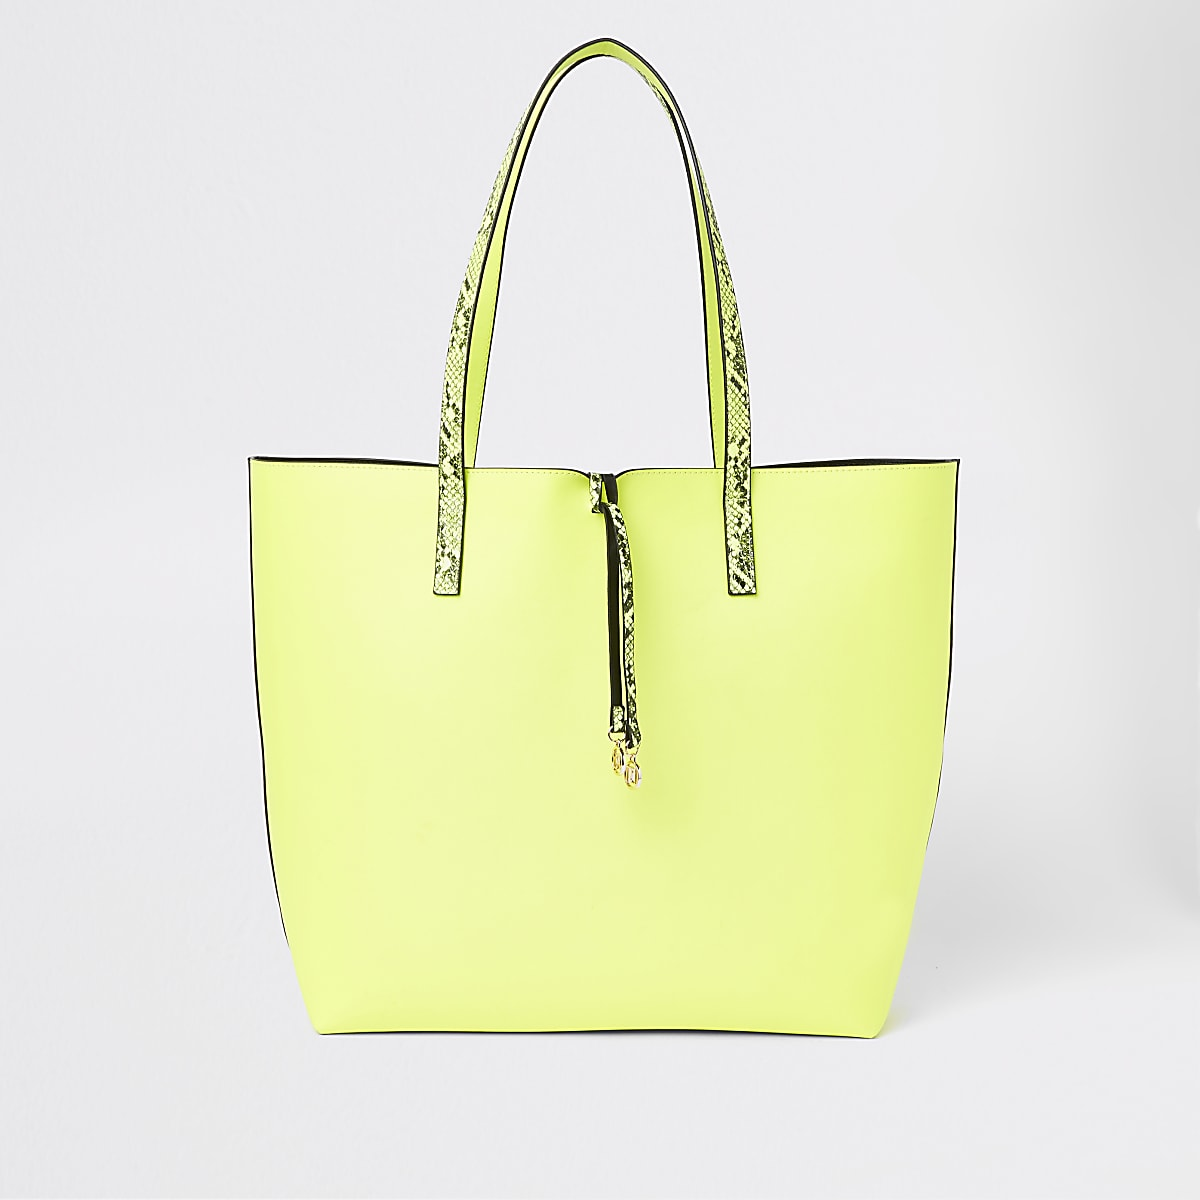 Neon yellow beach bag